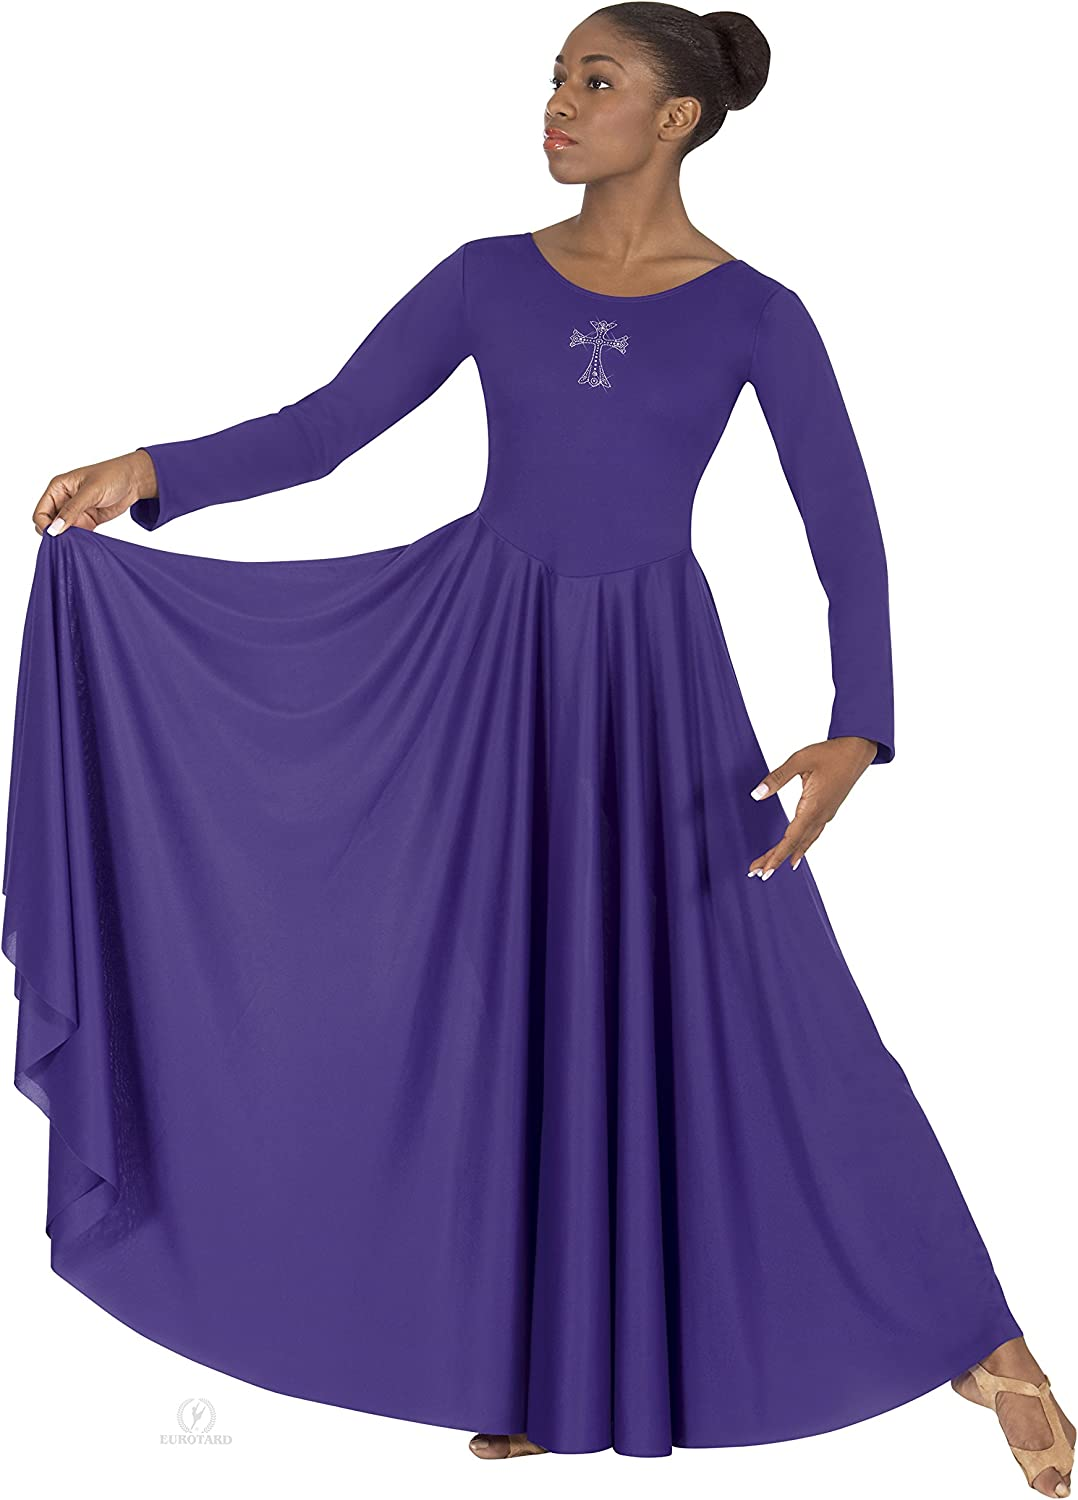 Eurotard 11022 Polyester Adult Dress Al sold out. Cross Rhinestone with Appli Max 75% OFF